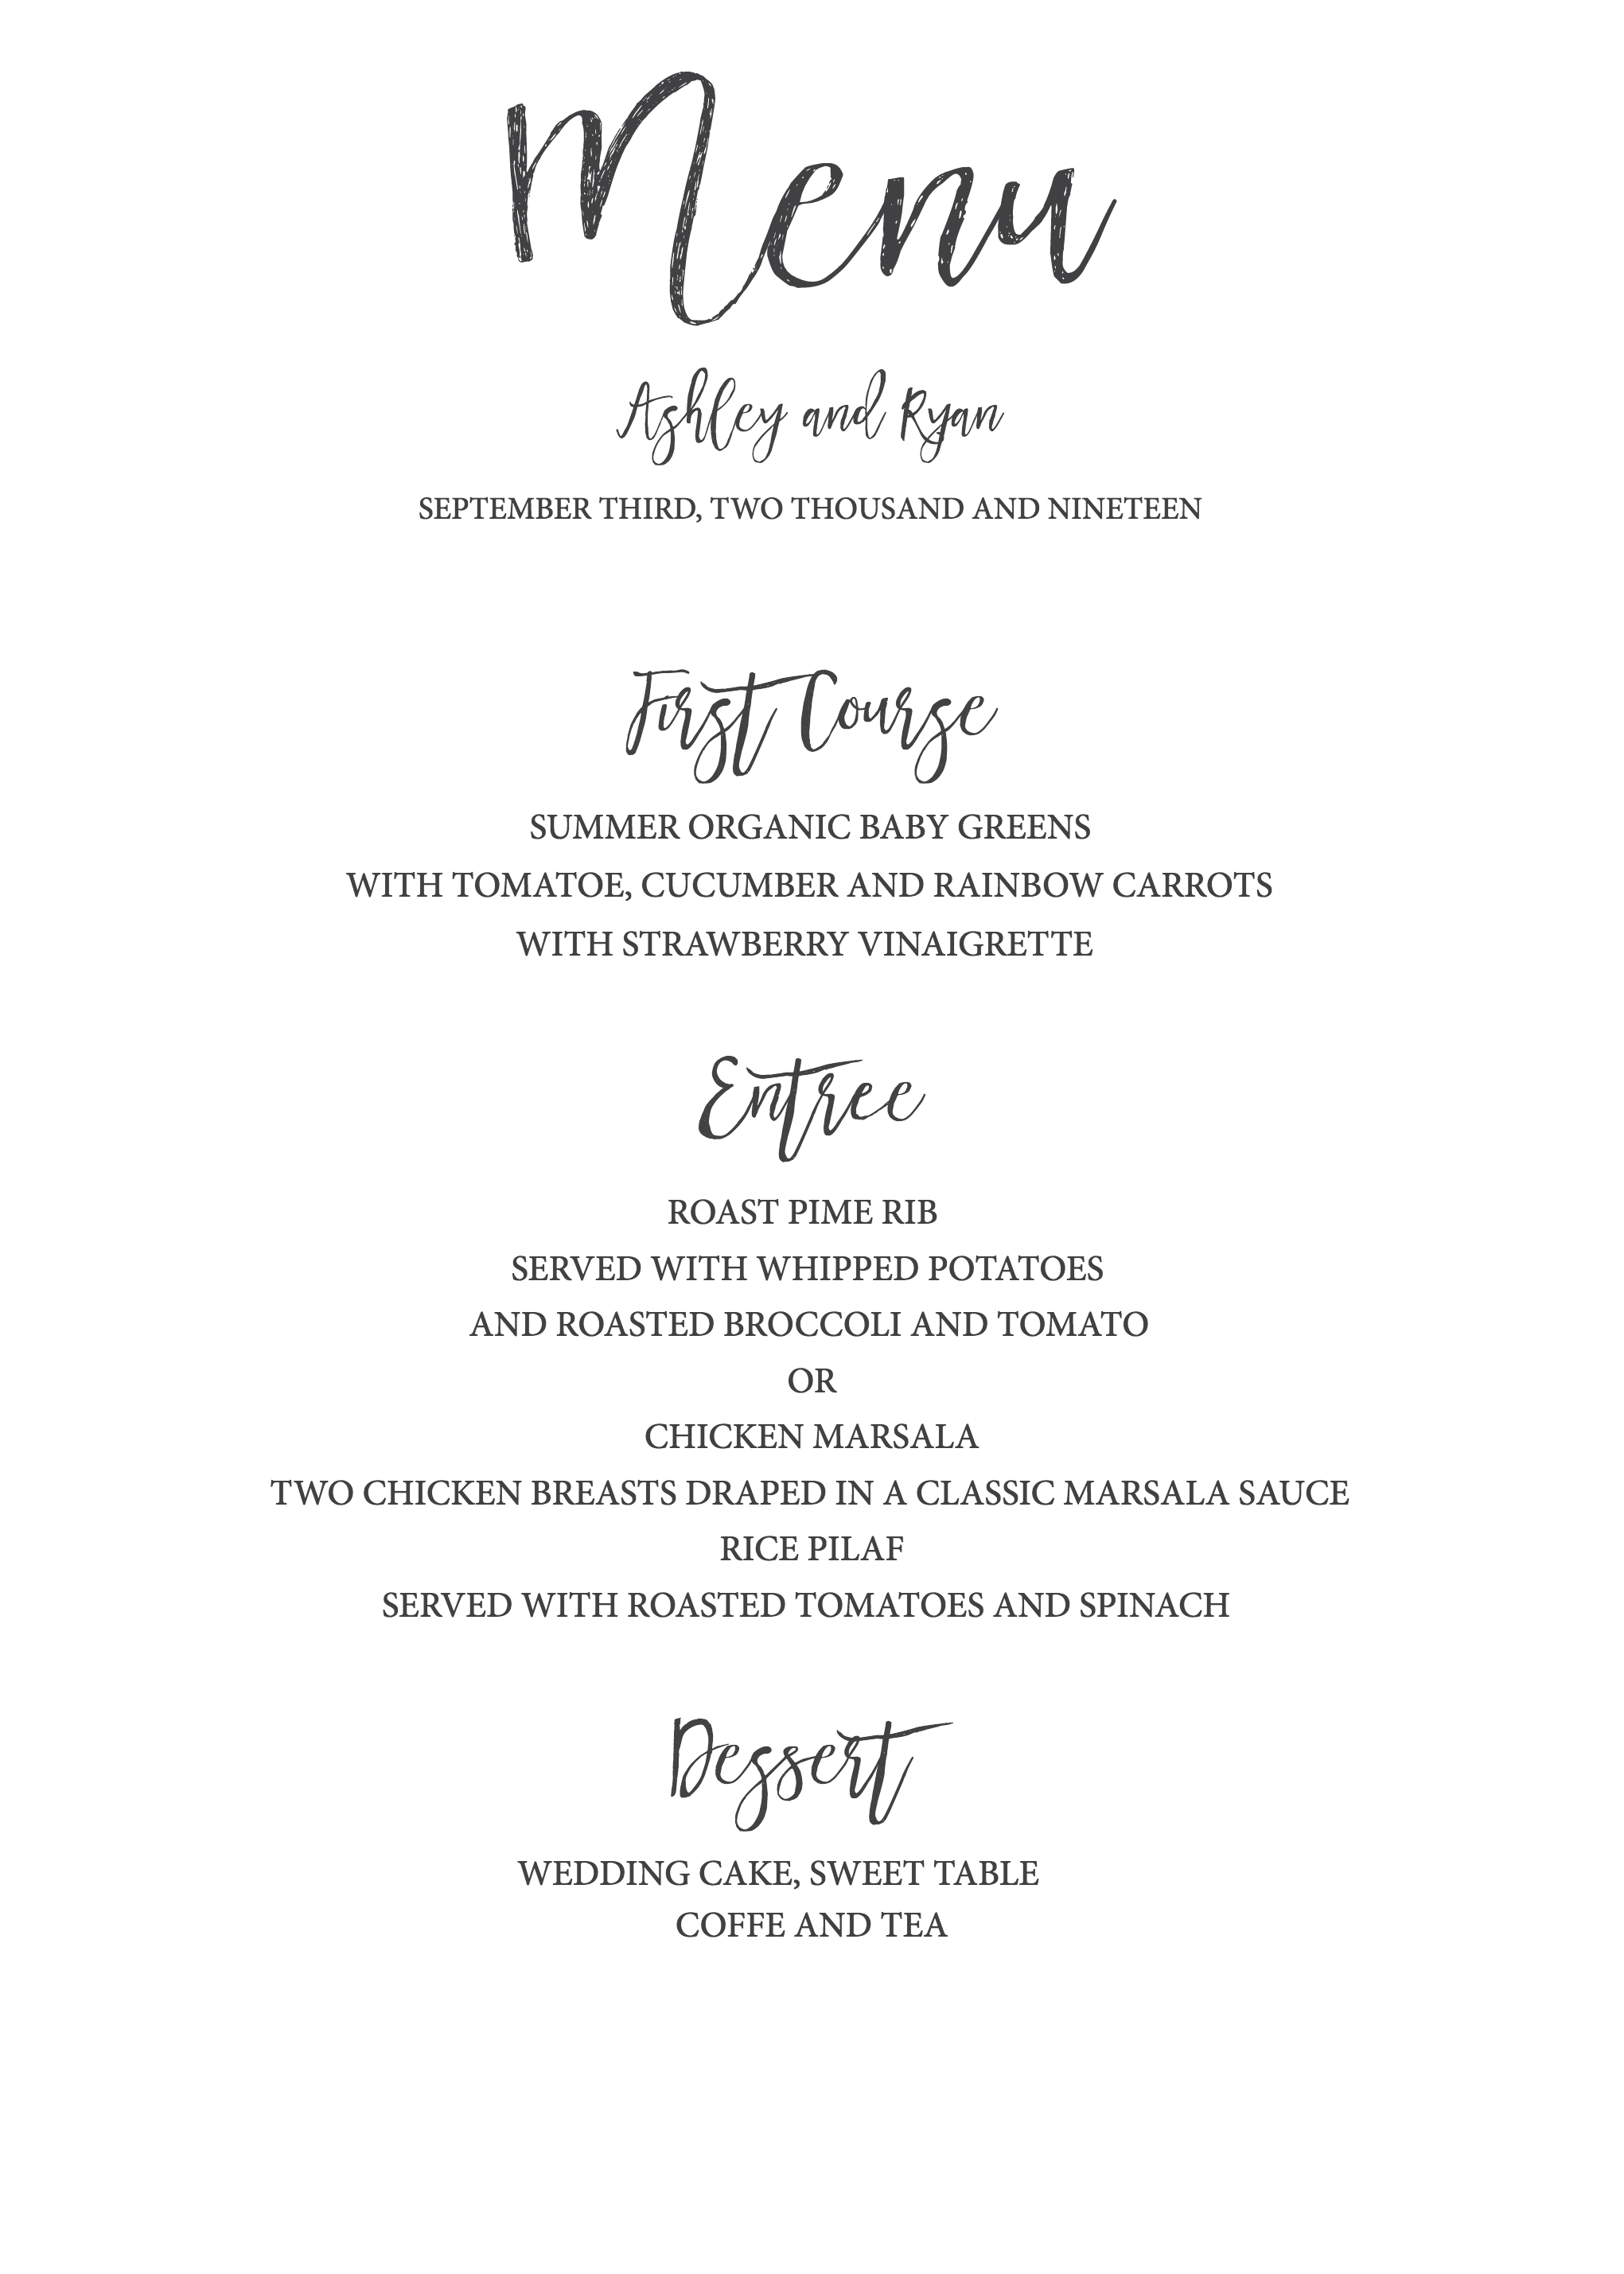 Timeless And Simple Wedding Invitation  Freebies  Free Printables Within Free Printable Menu Templates For Wedding